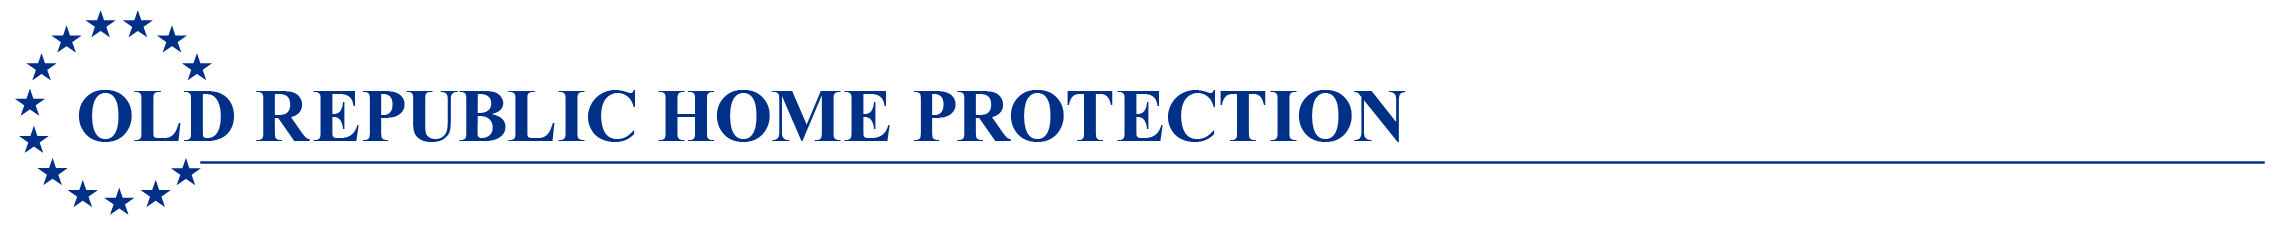 Old Republic Home Protection - Logo